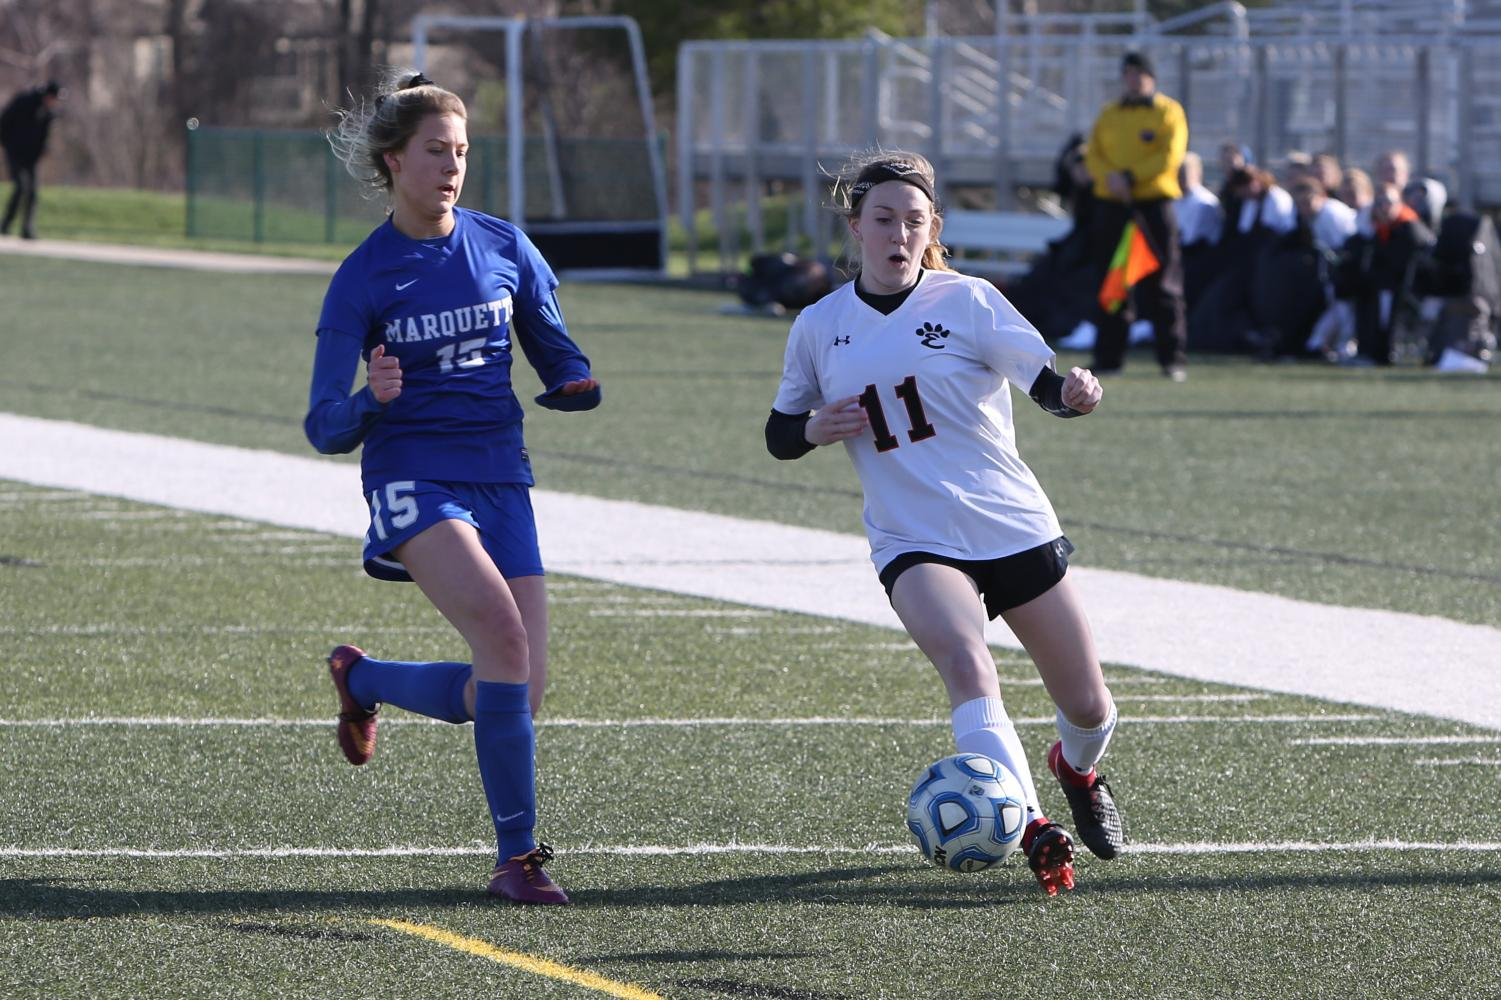 Senior Emma Hensley, pictured here at a game last season, plans to play a Missouri State University next year.